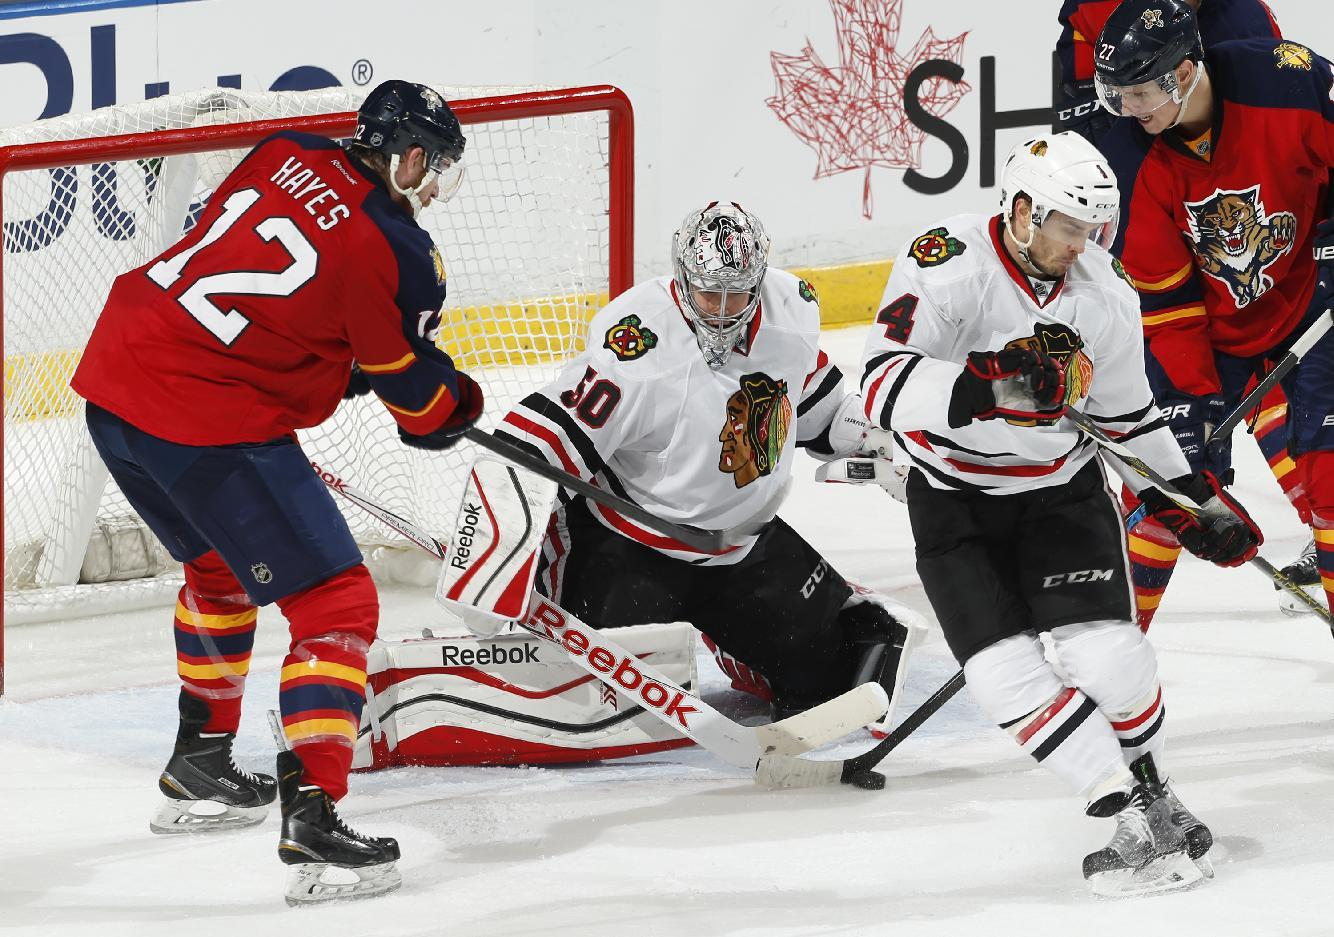 Crawford stops 20 shots for 3-0 win over Panthers